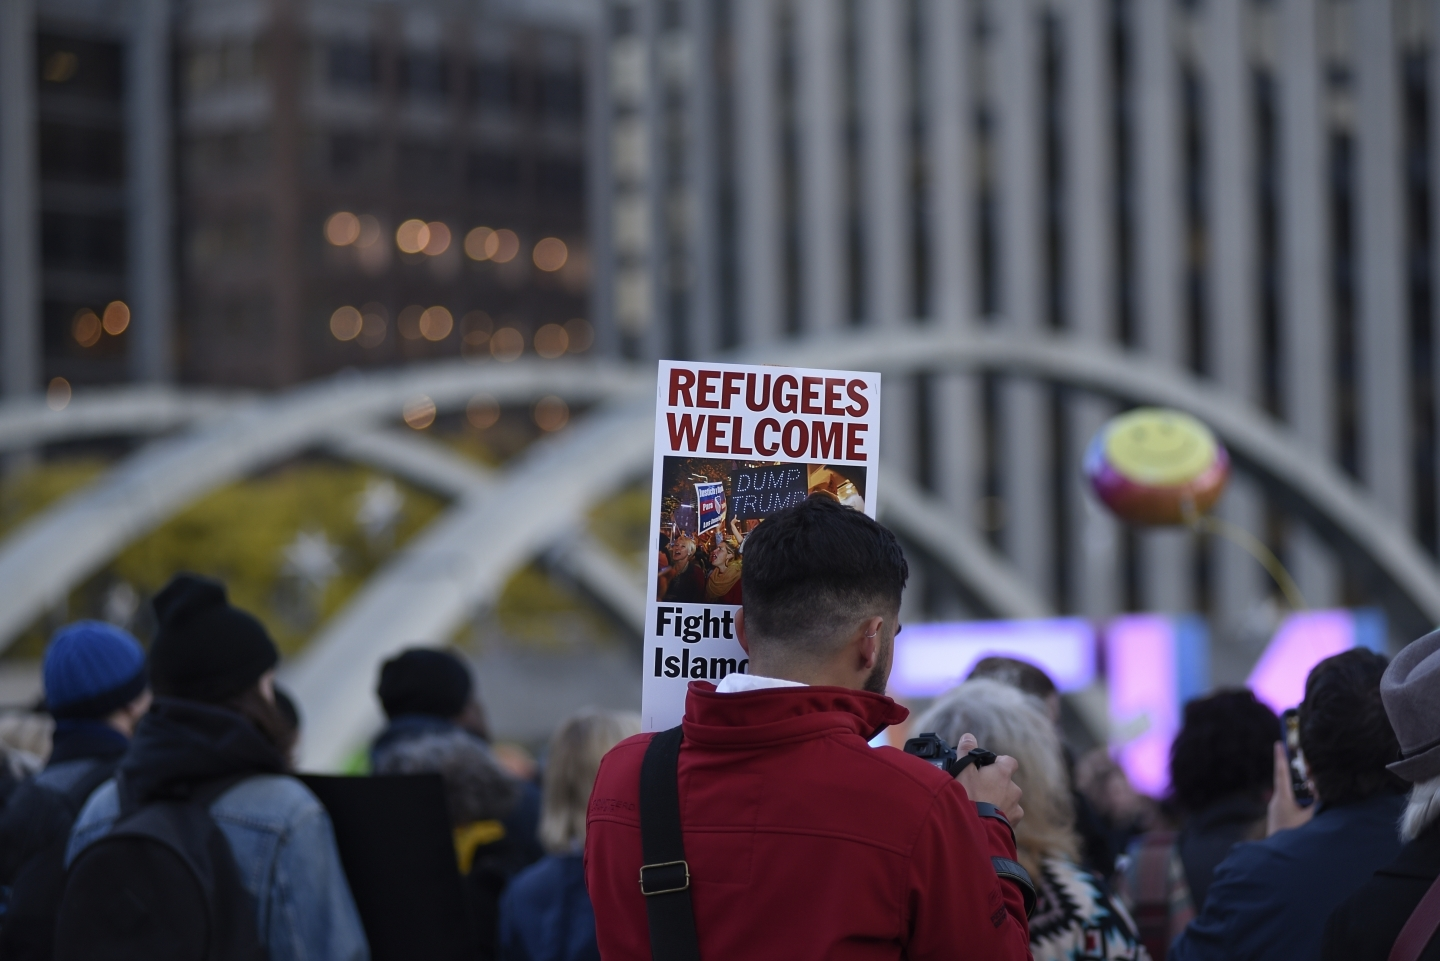 A demonstrator holds a sign welcoming refugees to North America during a protest rally on November 13, 2016 in Toronto, Canada. (Shutterstock)